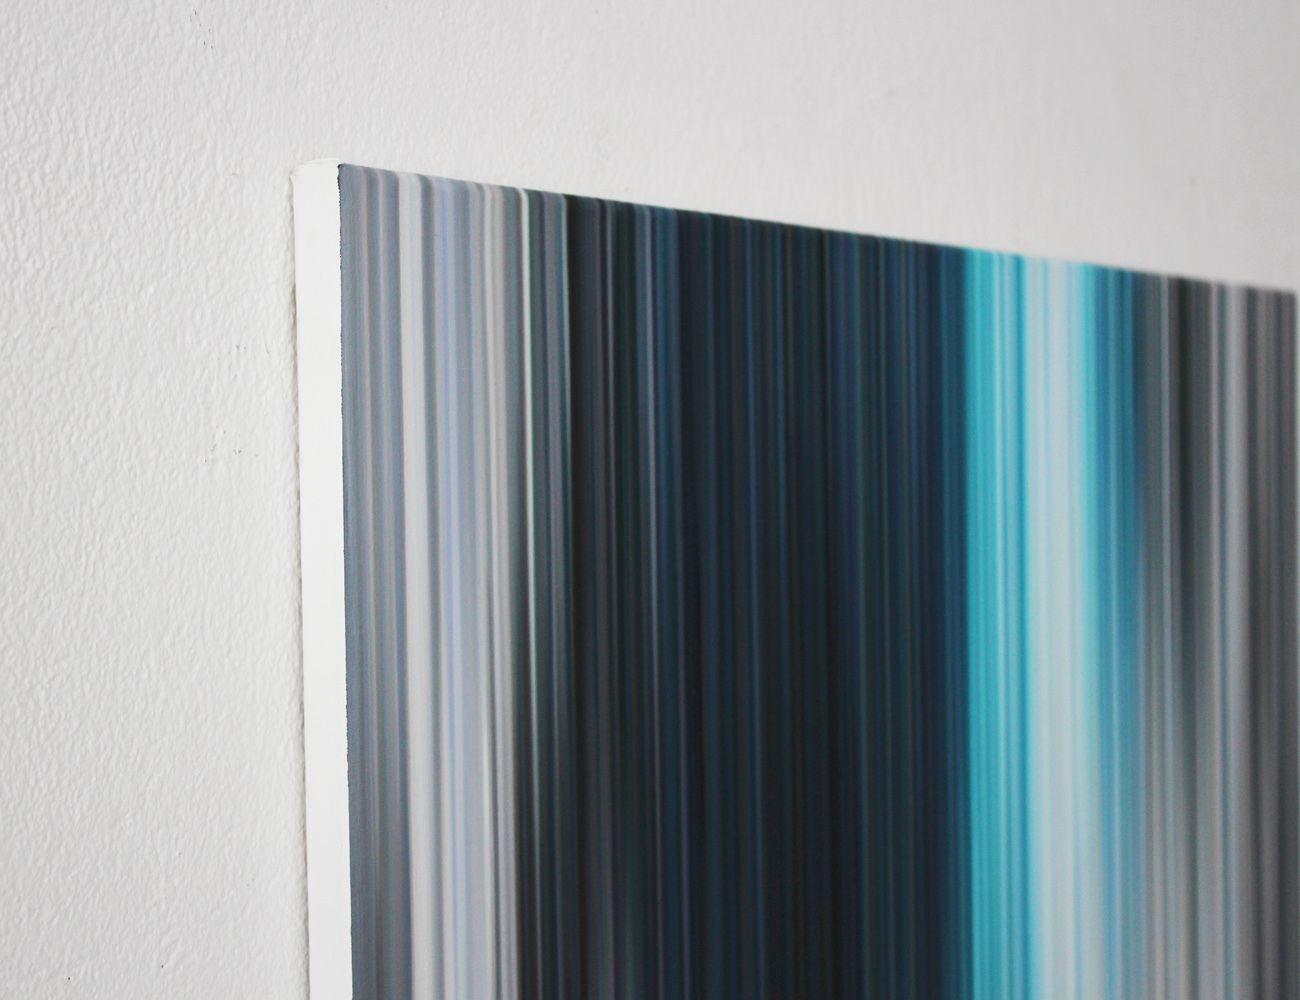 Light'n'Lines No.01,Doris Marten,Contemporary painting, detail 2